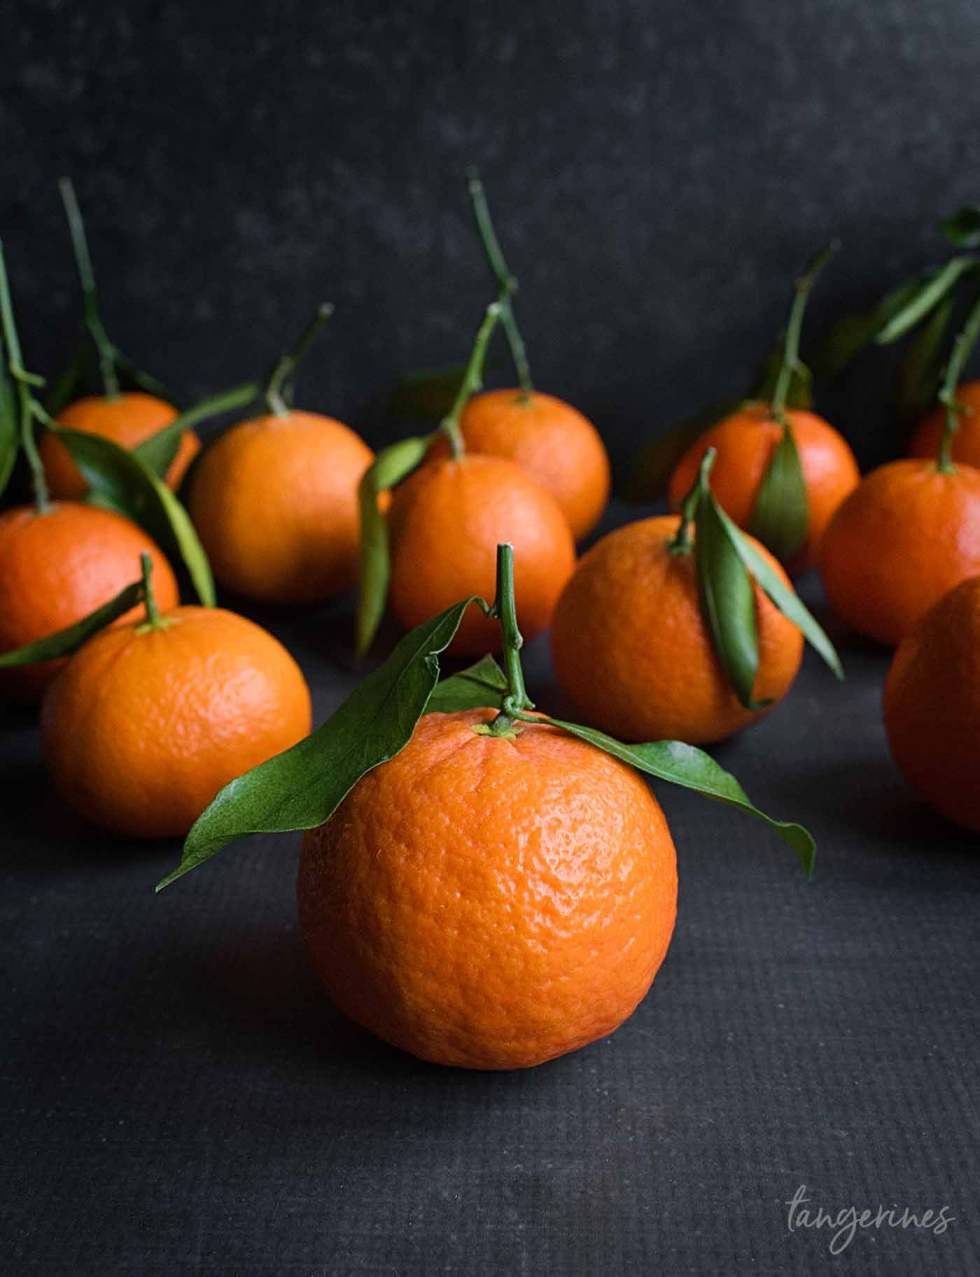 Tangerines with stems and leaves